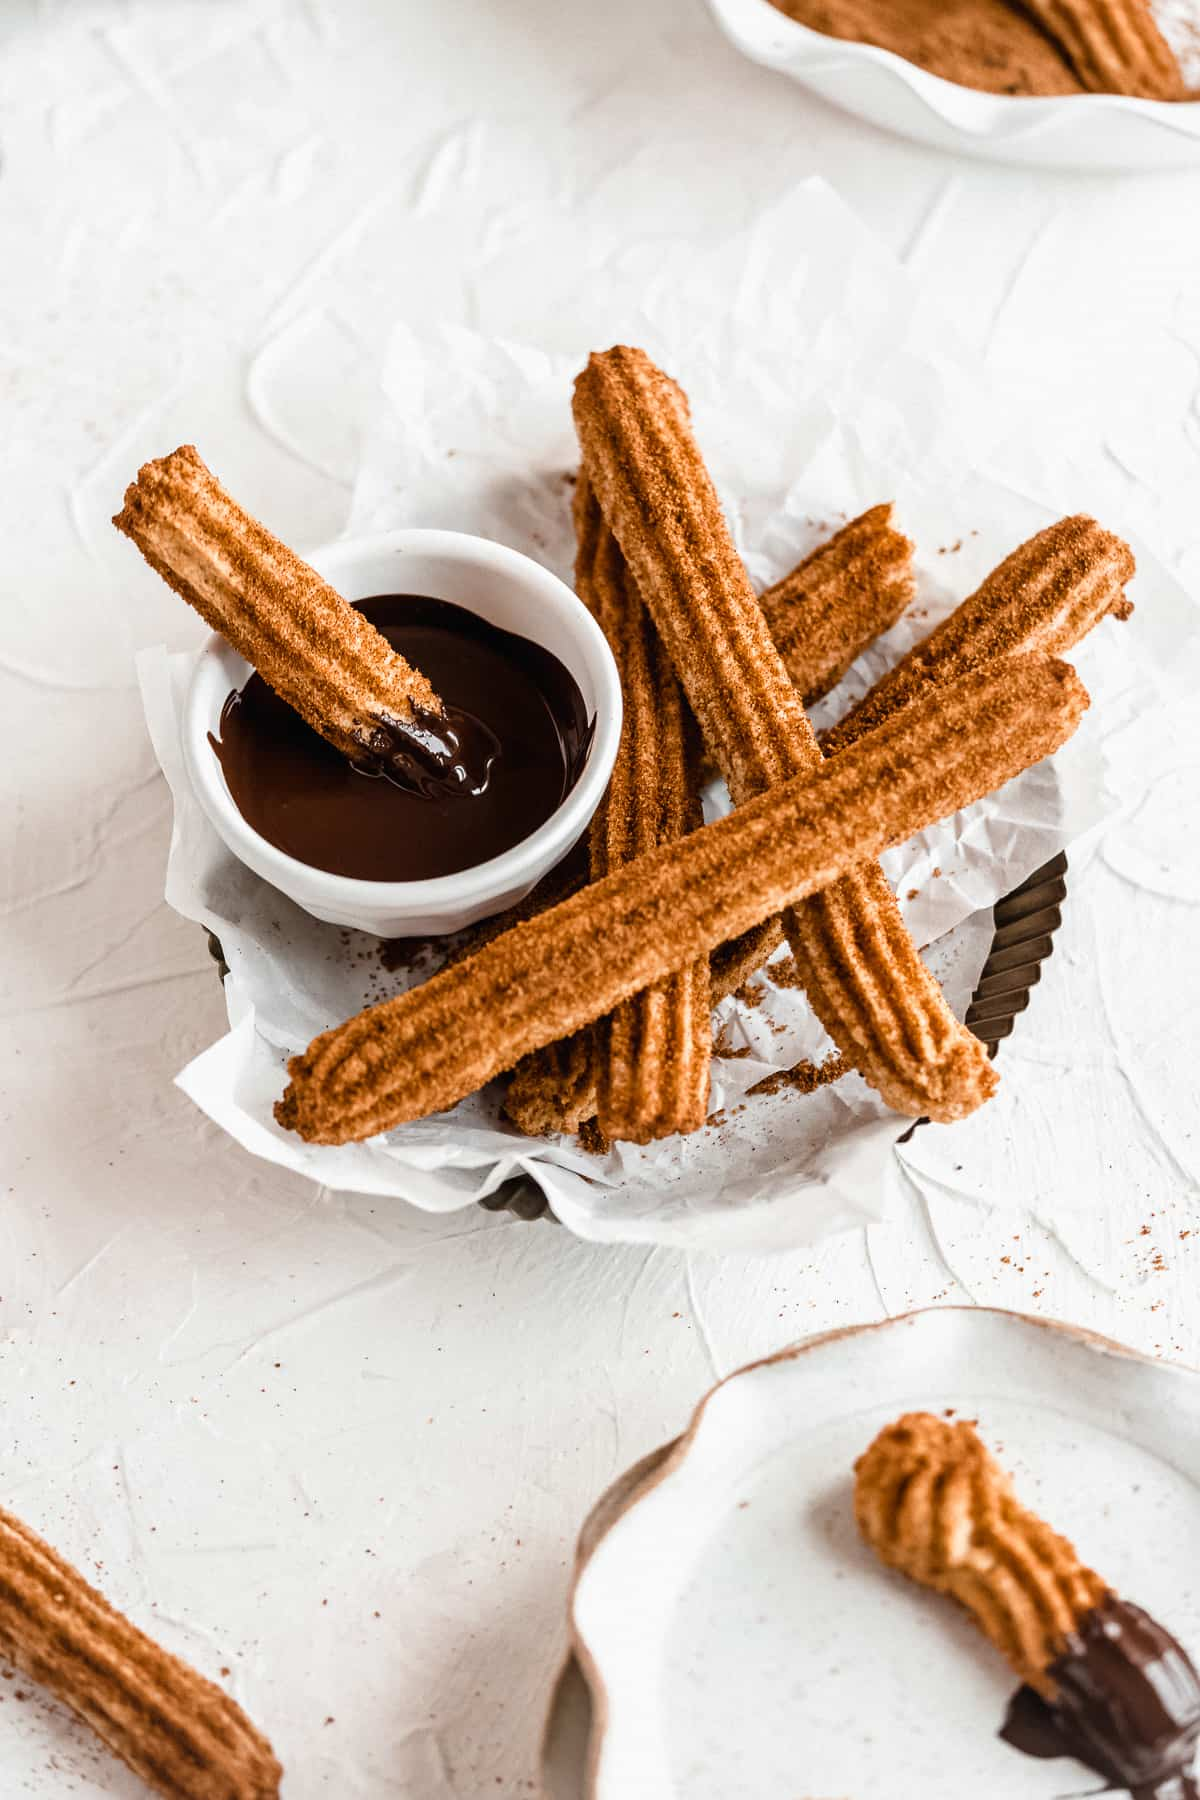 Basket of gluten free churros with one dipped in chocolate.